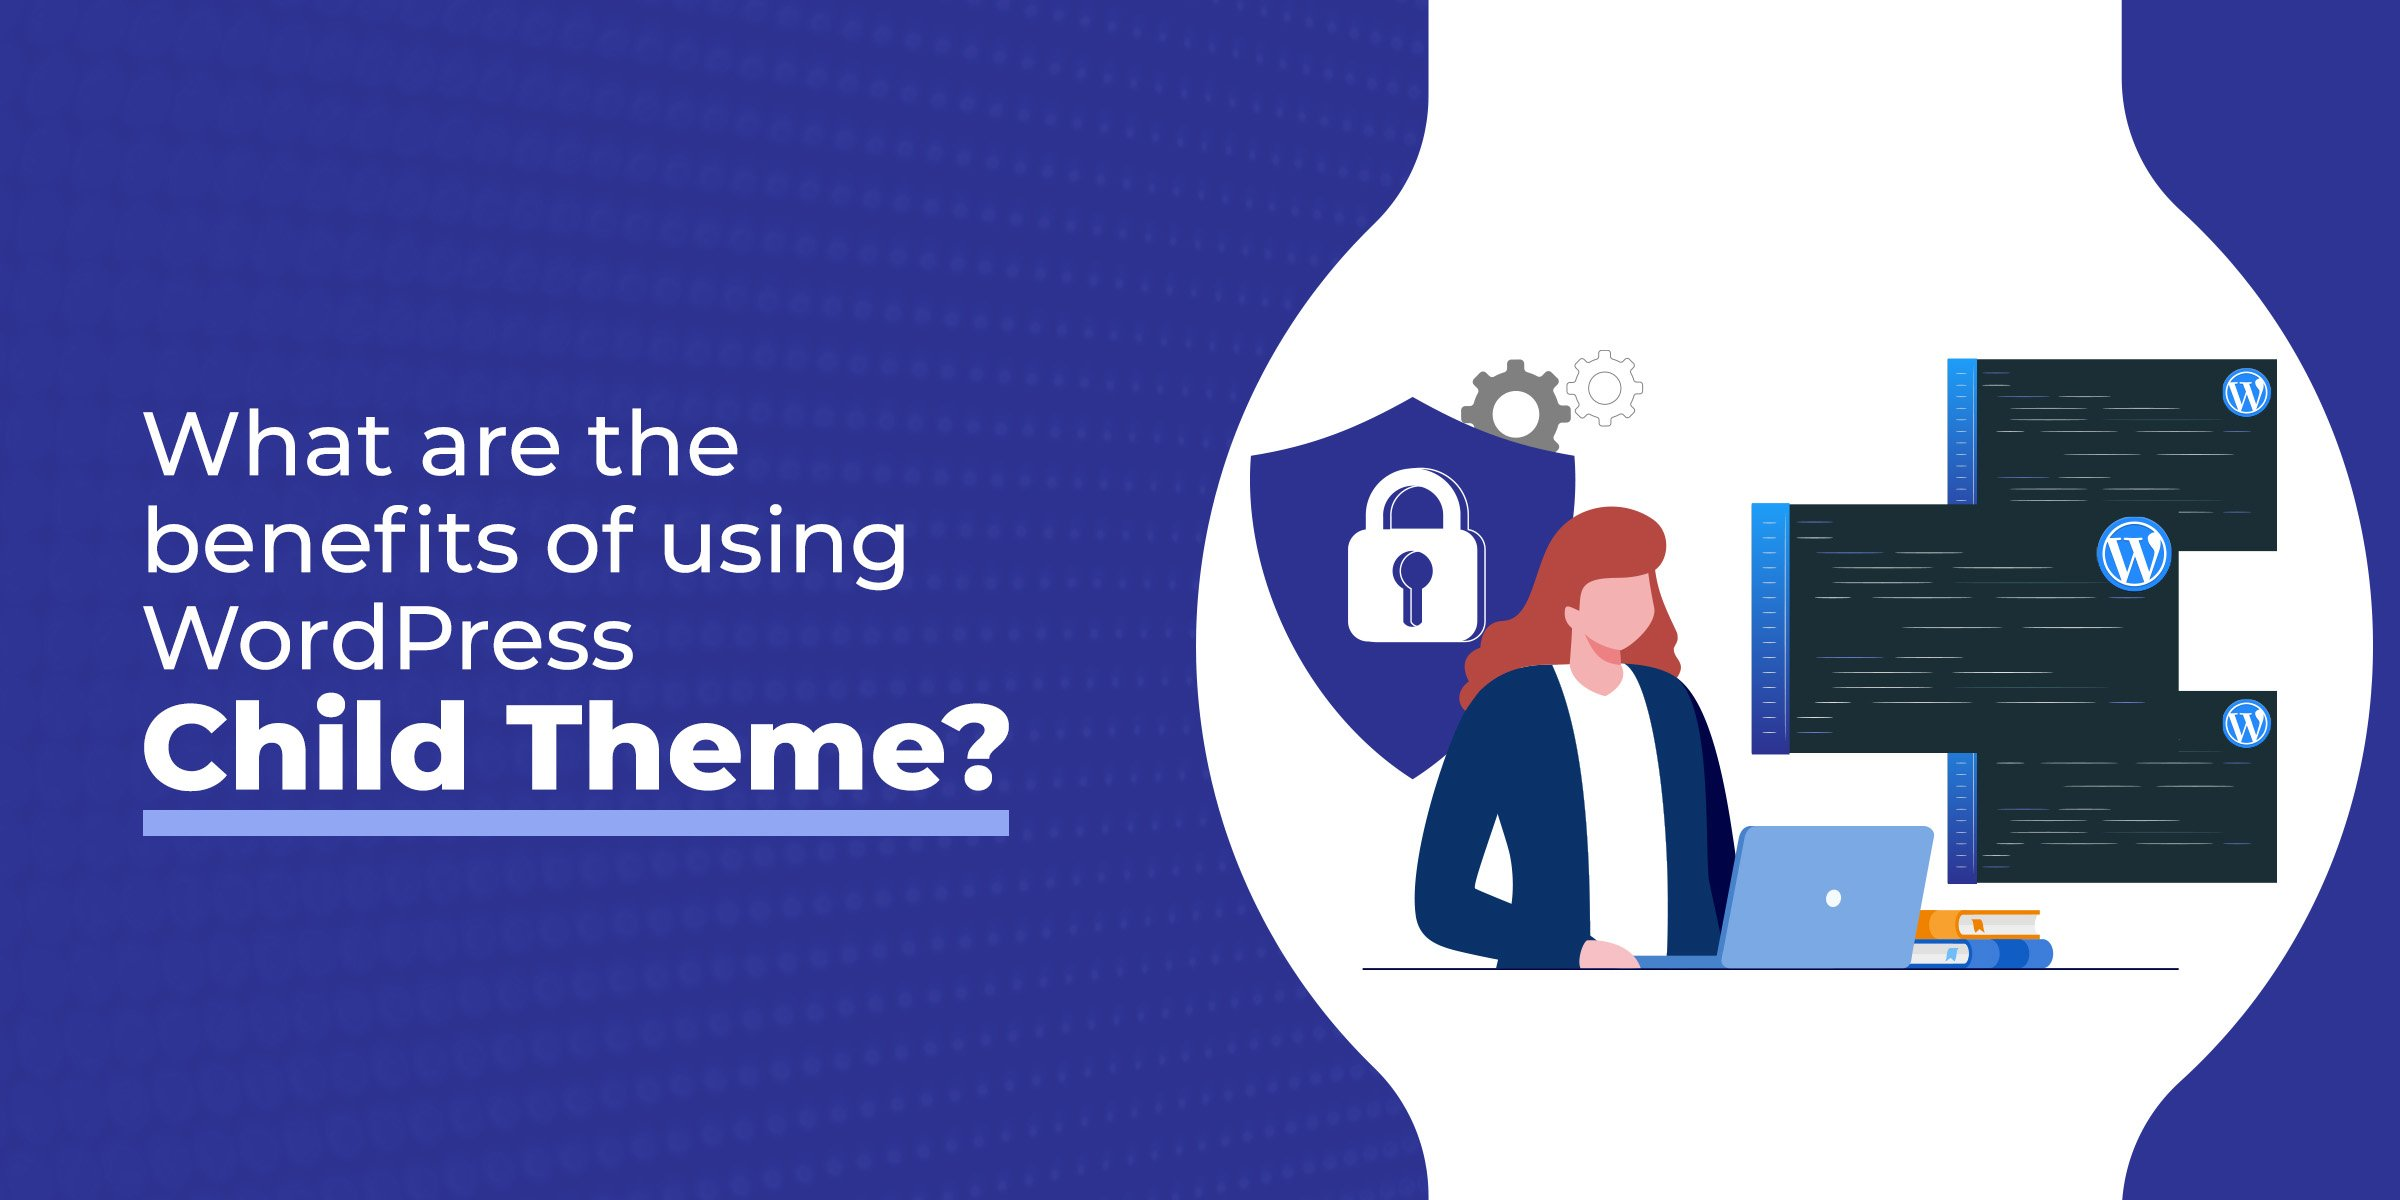 What are the benefits of using WordPress Child Theme?What are the benefits of using WordPress Child Theme?